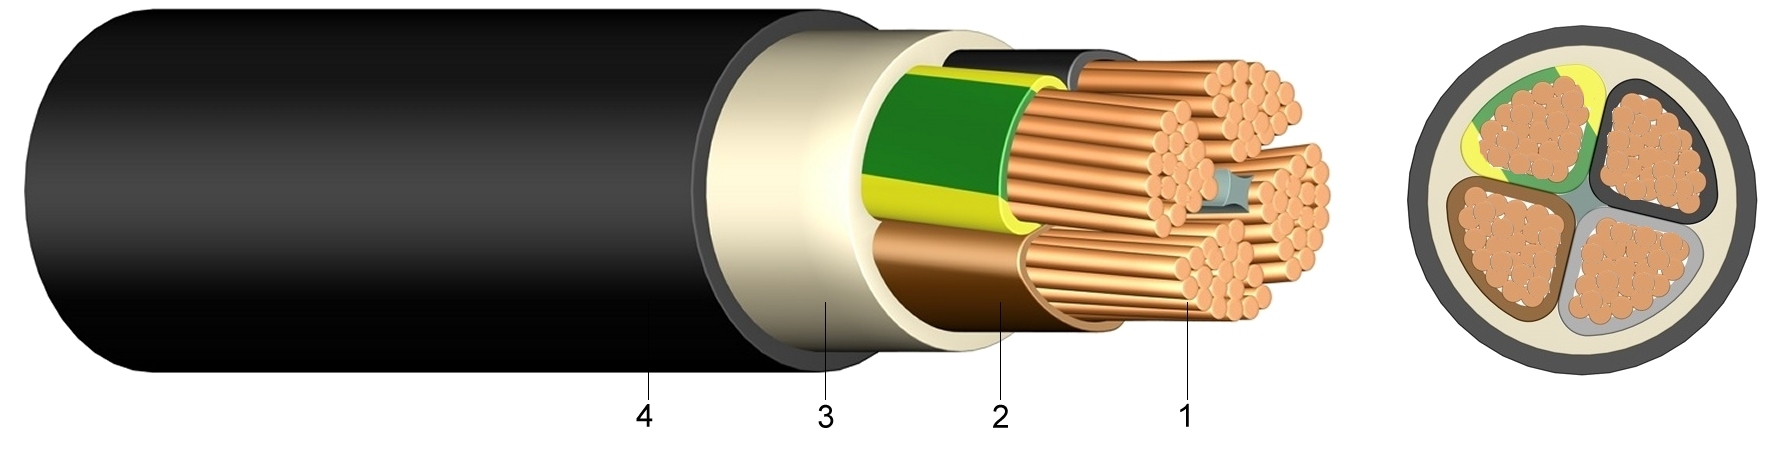 Power Cables 0,6/1 KV PVC and PE Insulated - Proizvodi - Tesla Cables